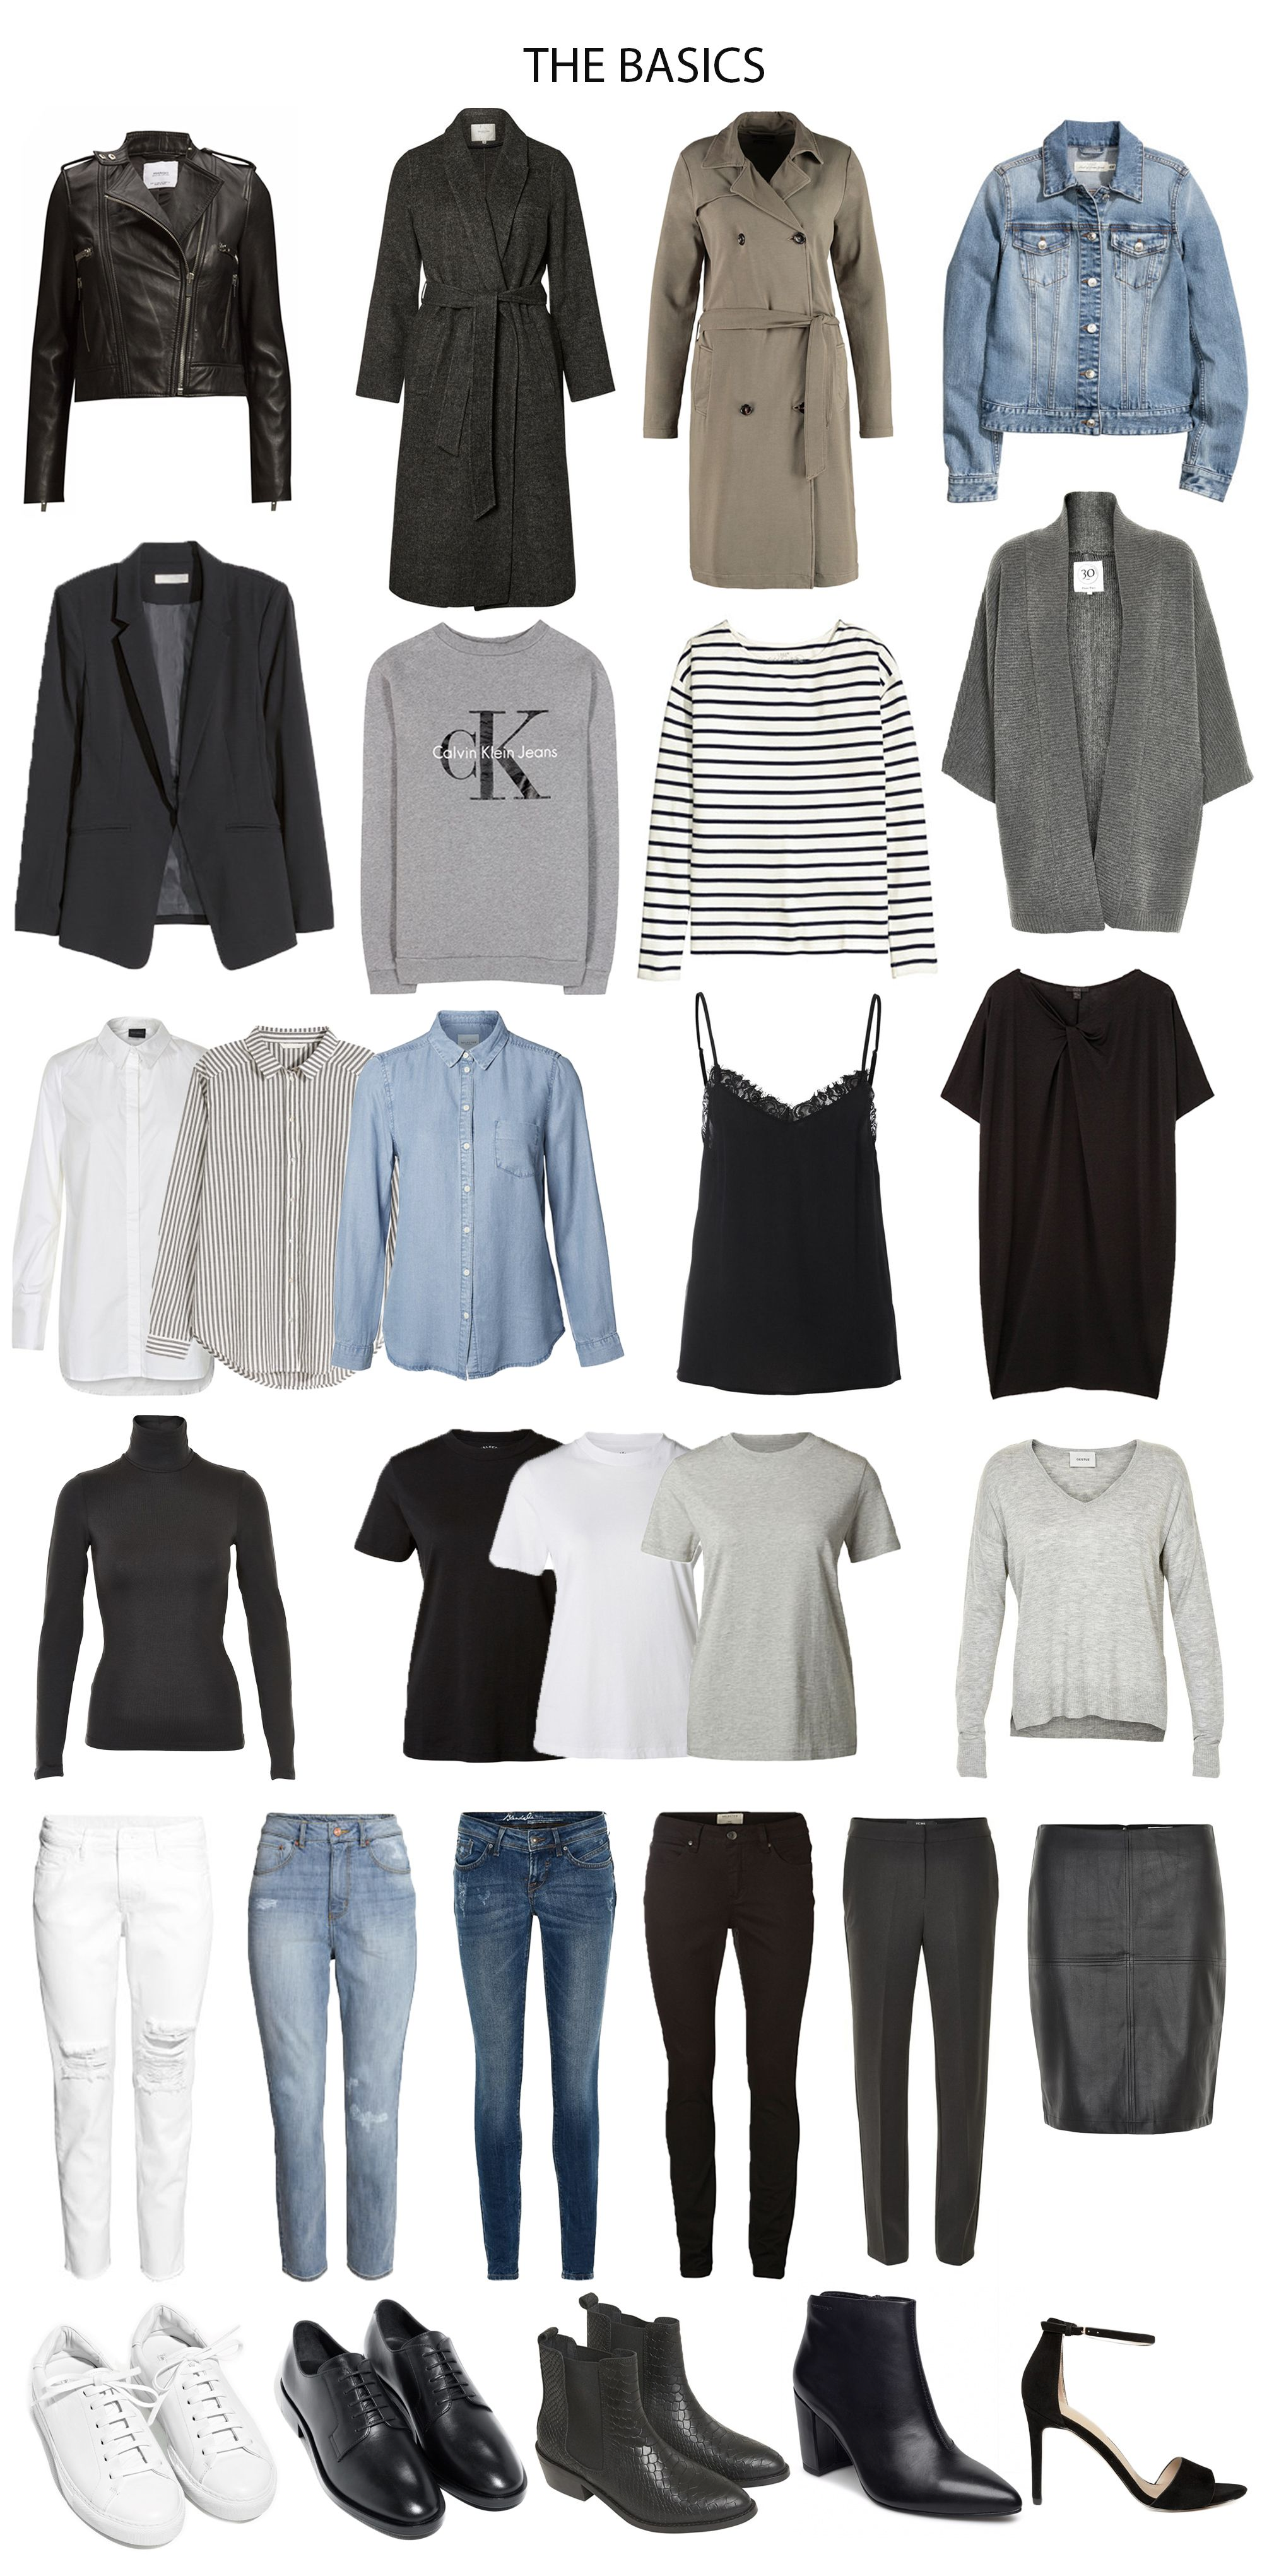 My Own Capsule Wardrobe Fashion Capsule Minimalist